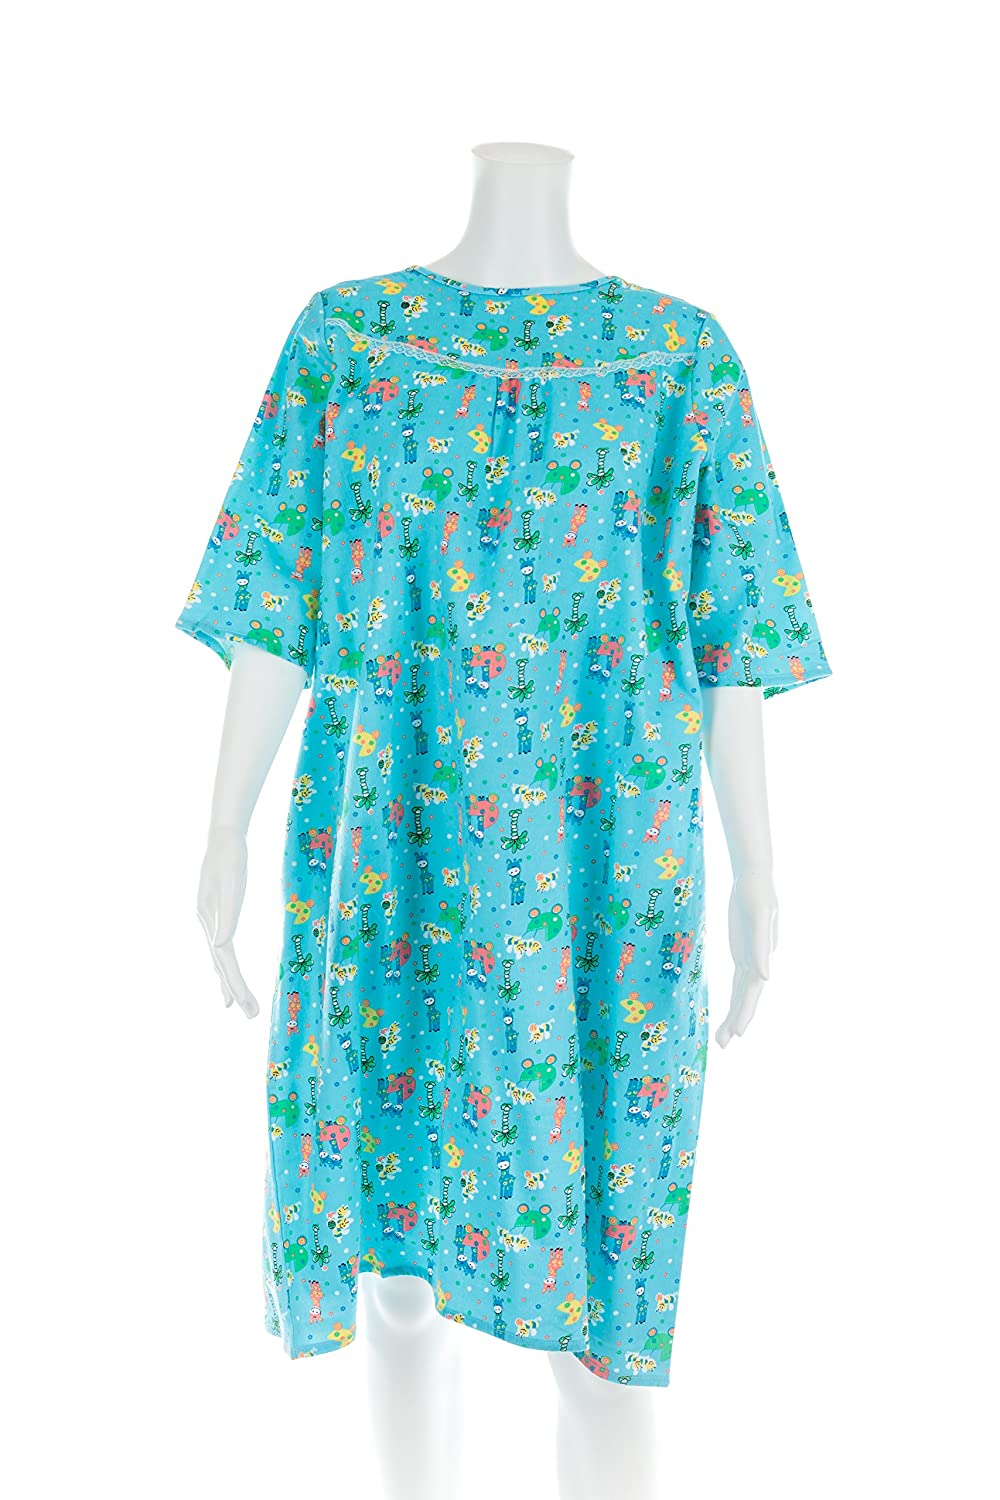 Women's Adaptive Flannel Backwrap Gown - Fun Prints with Blue Background